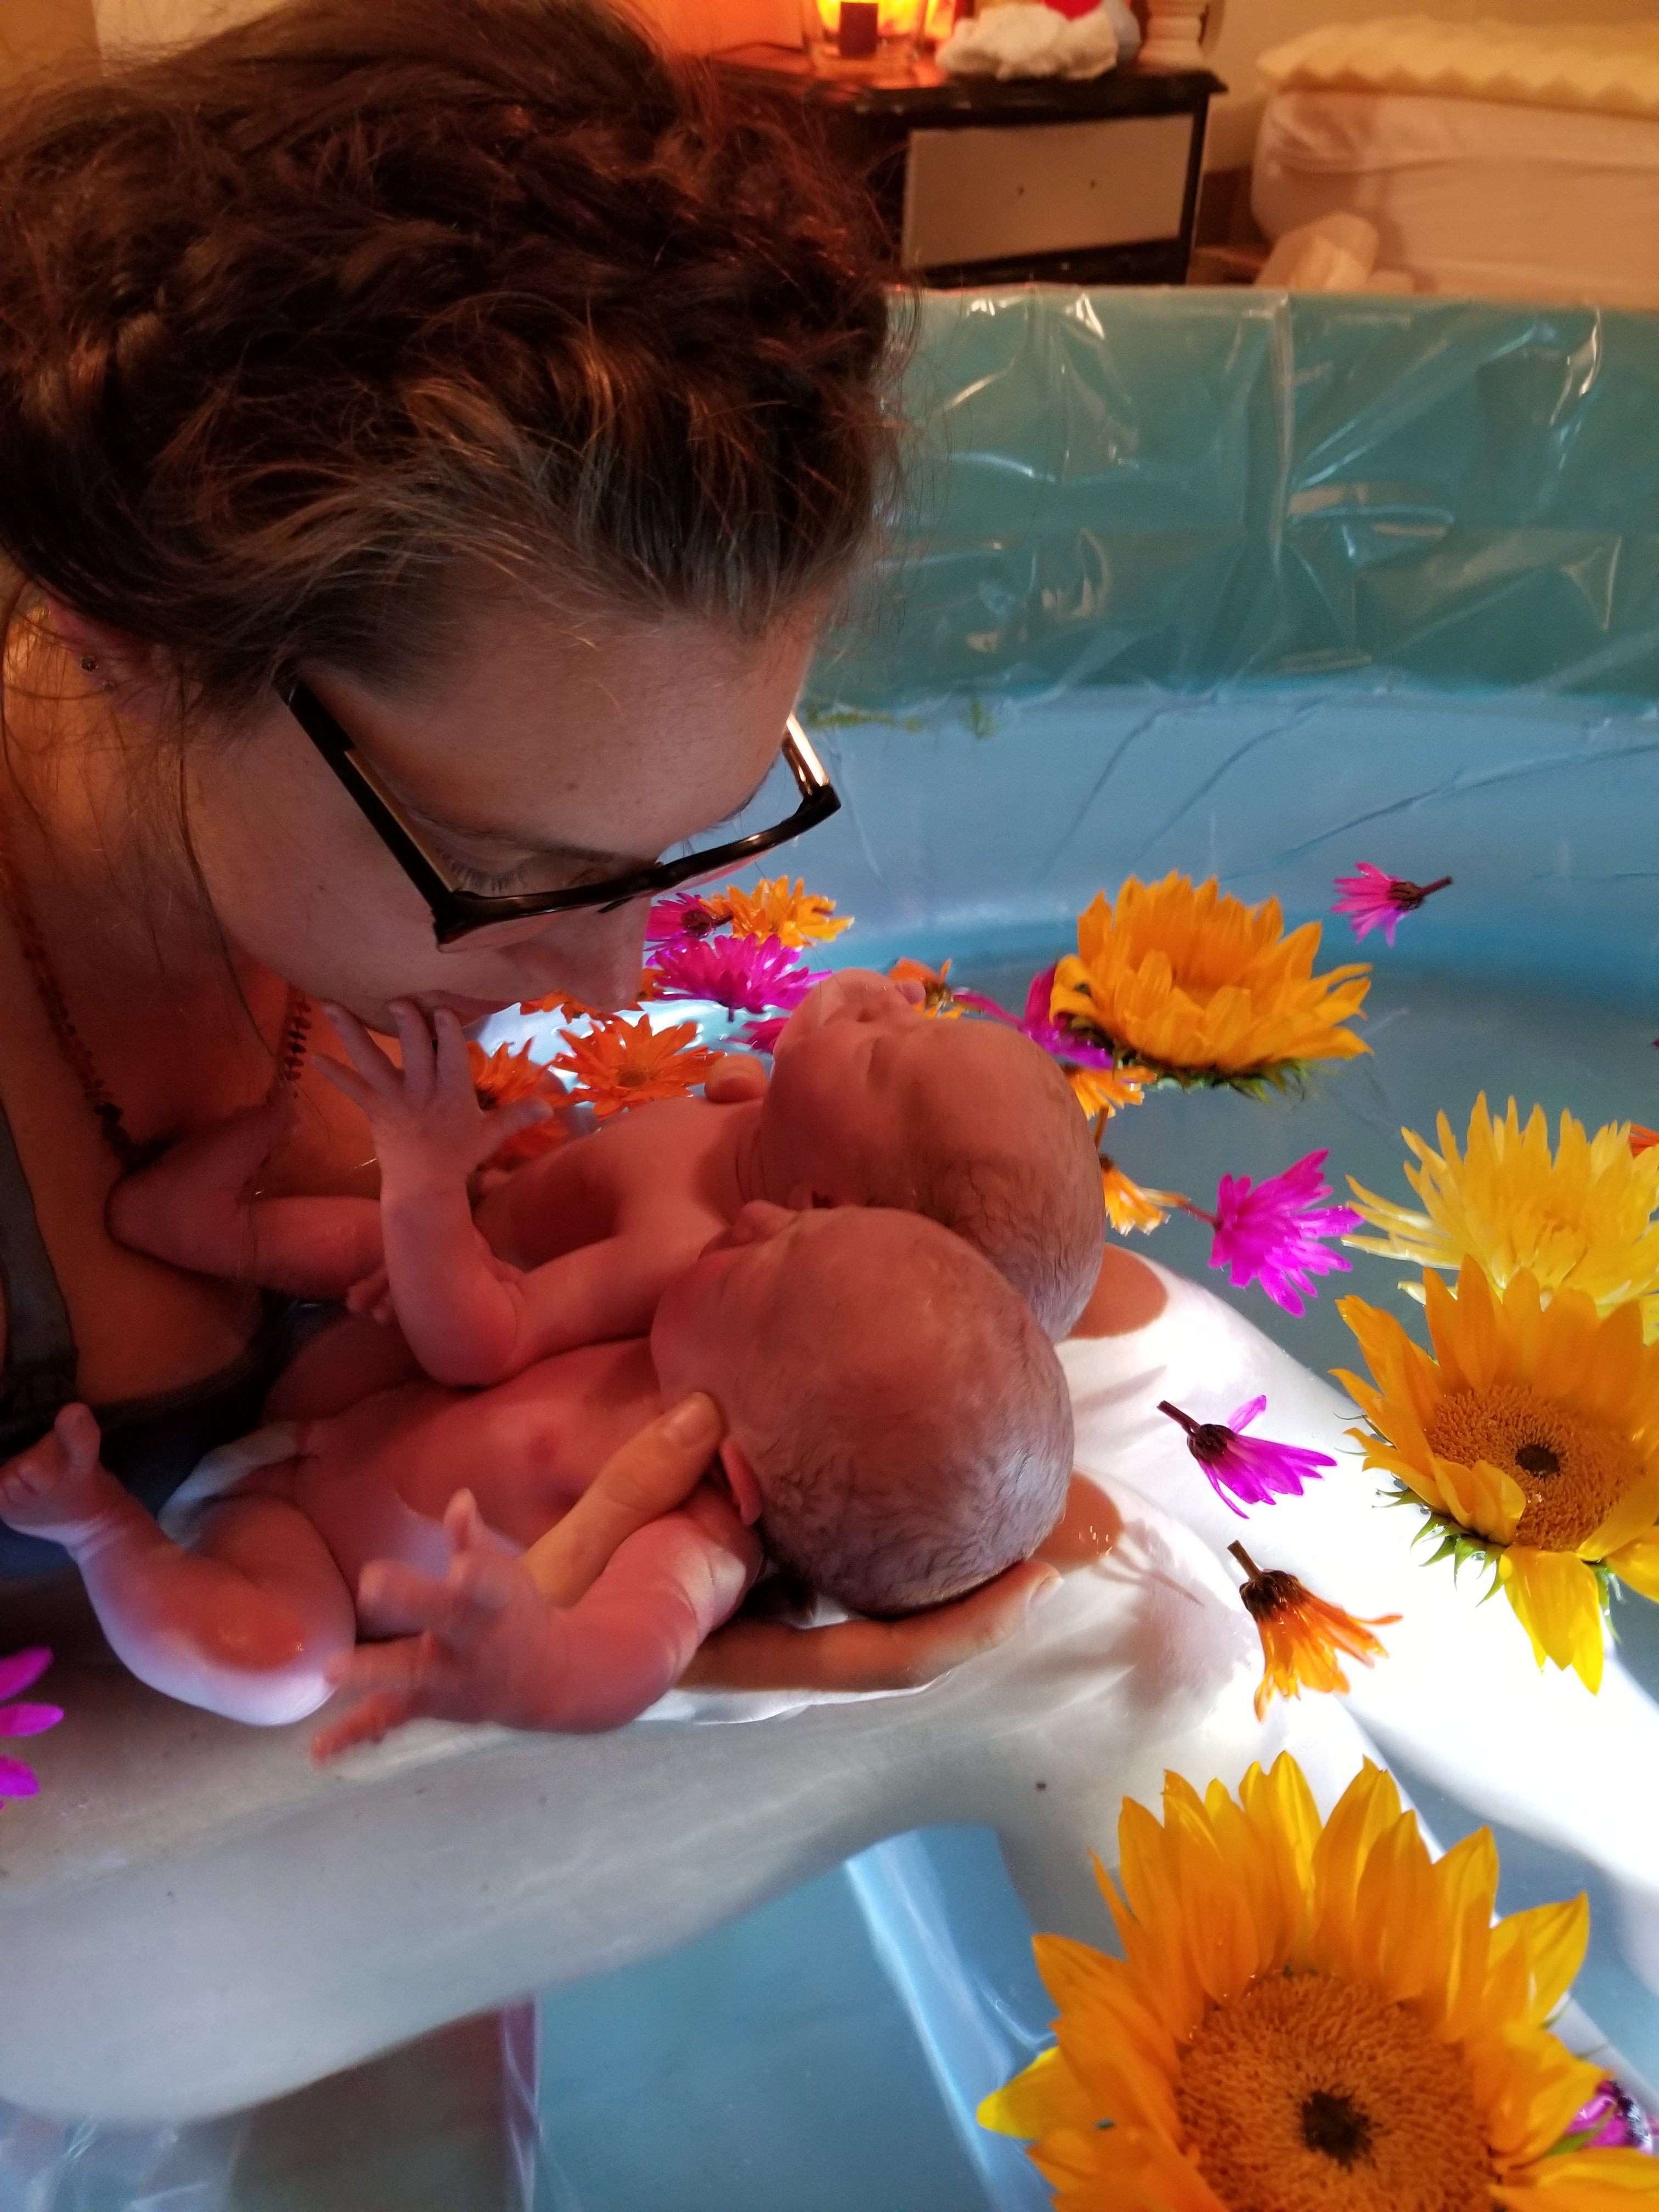 Finding A Midwife Helped Alina Achieve A Natural Home Twin